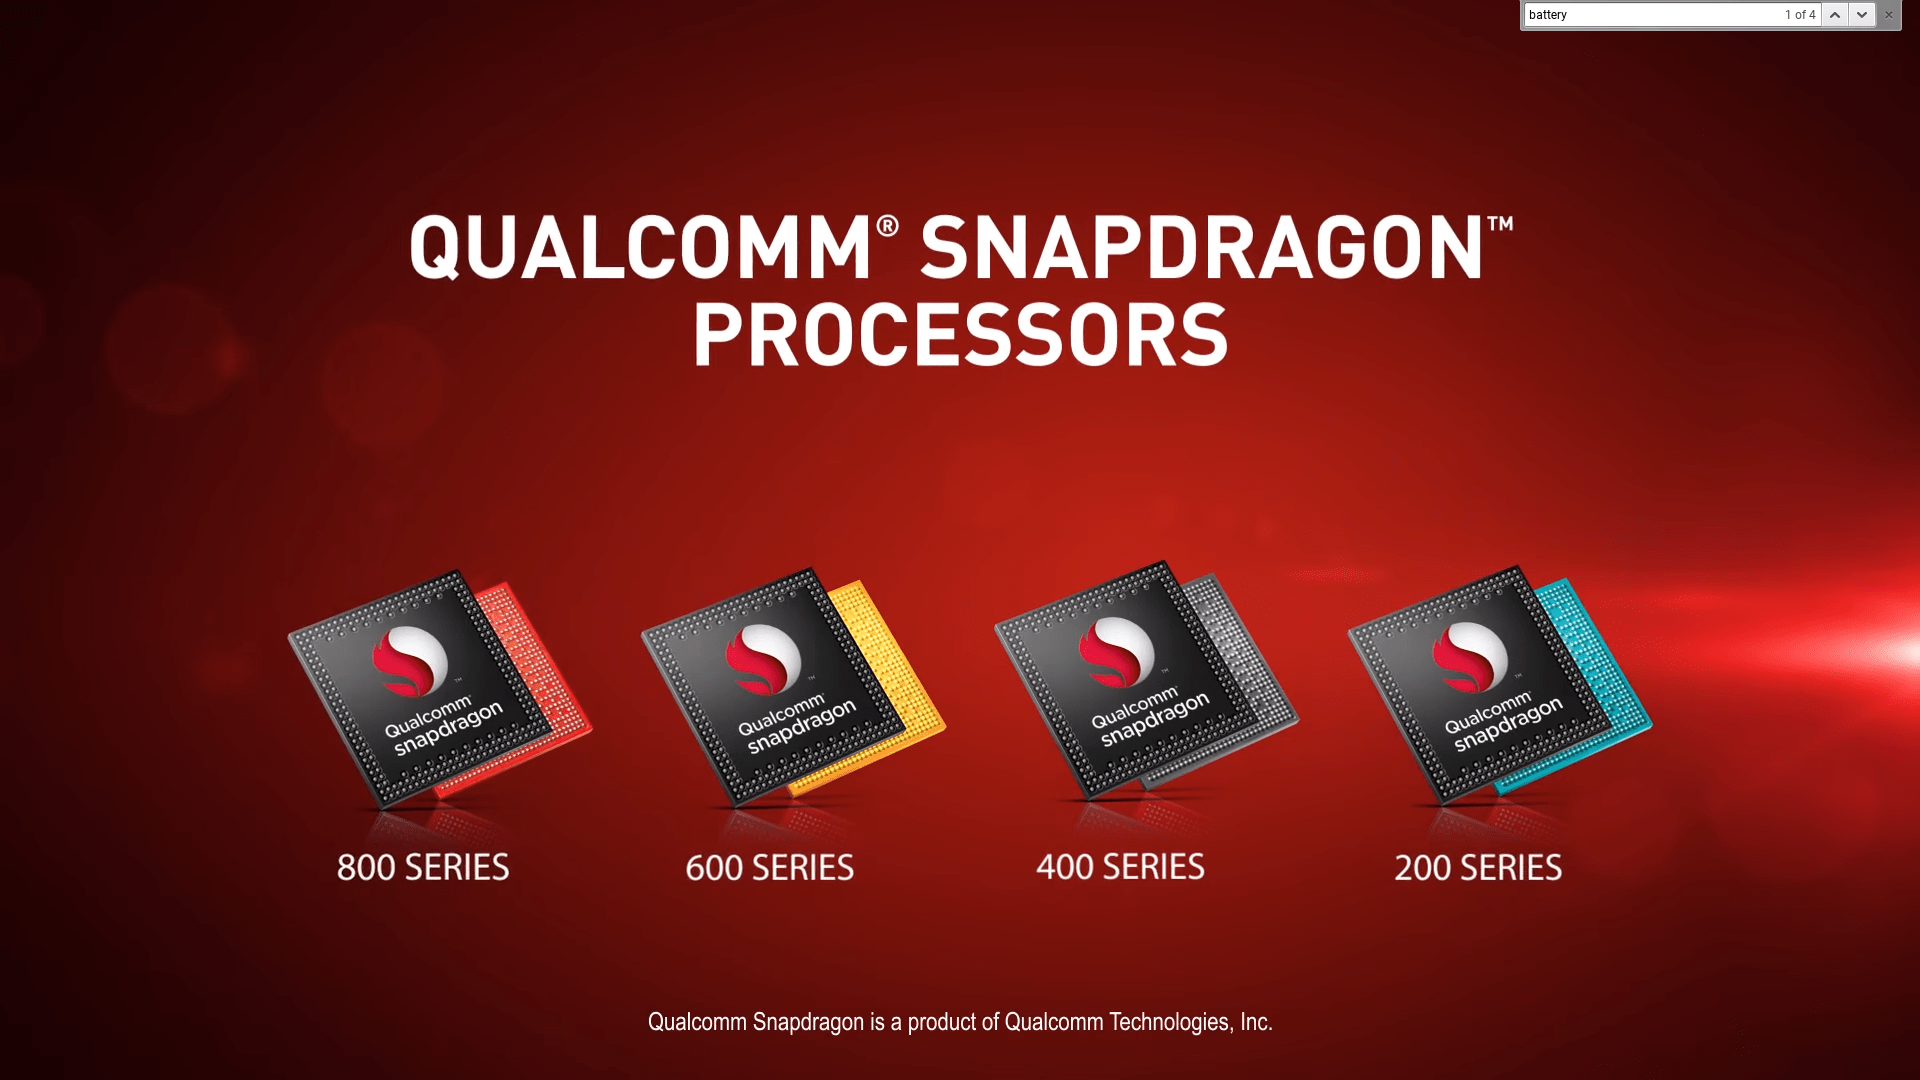 San Diego Wallpaper Hd Qualcomm Snapdragon 660 630 Chips Have High Speed